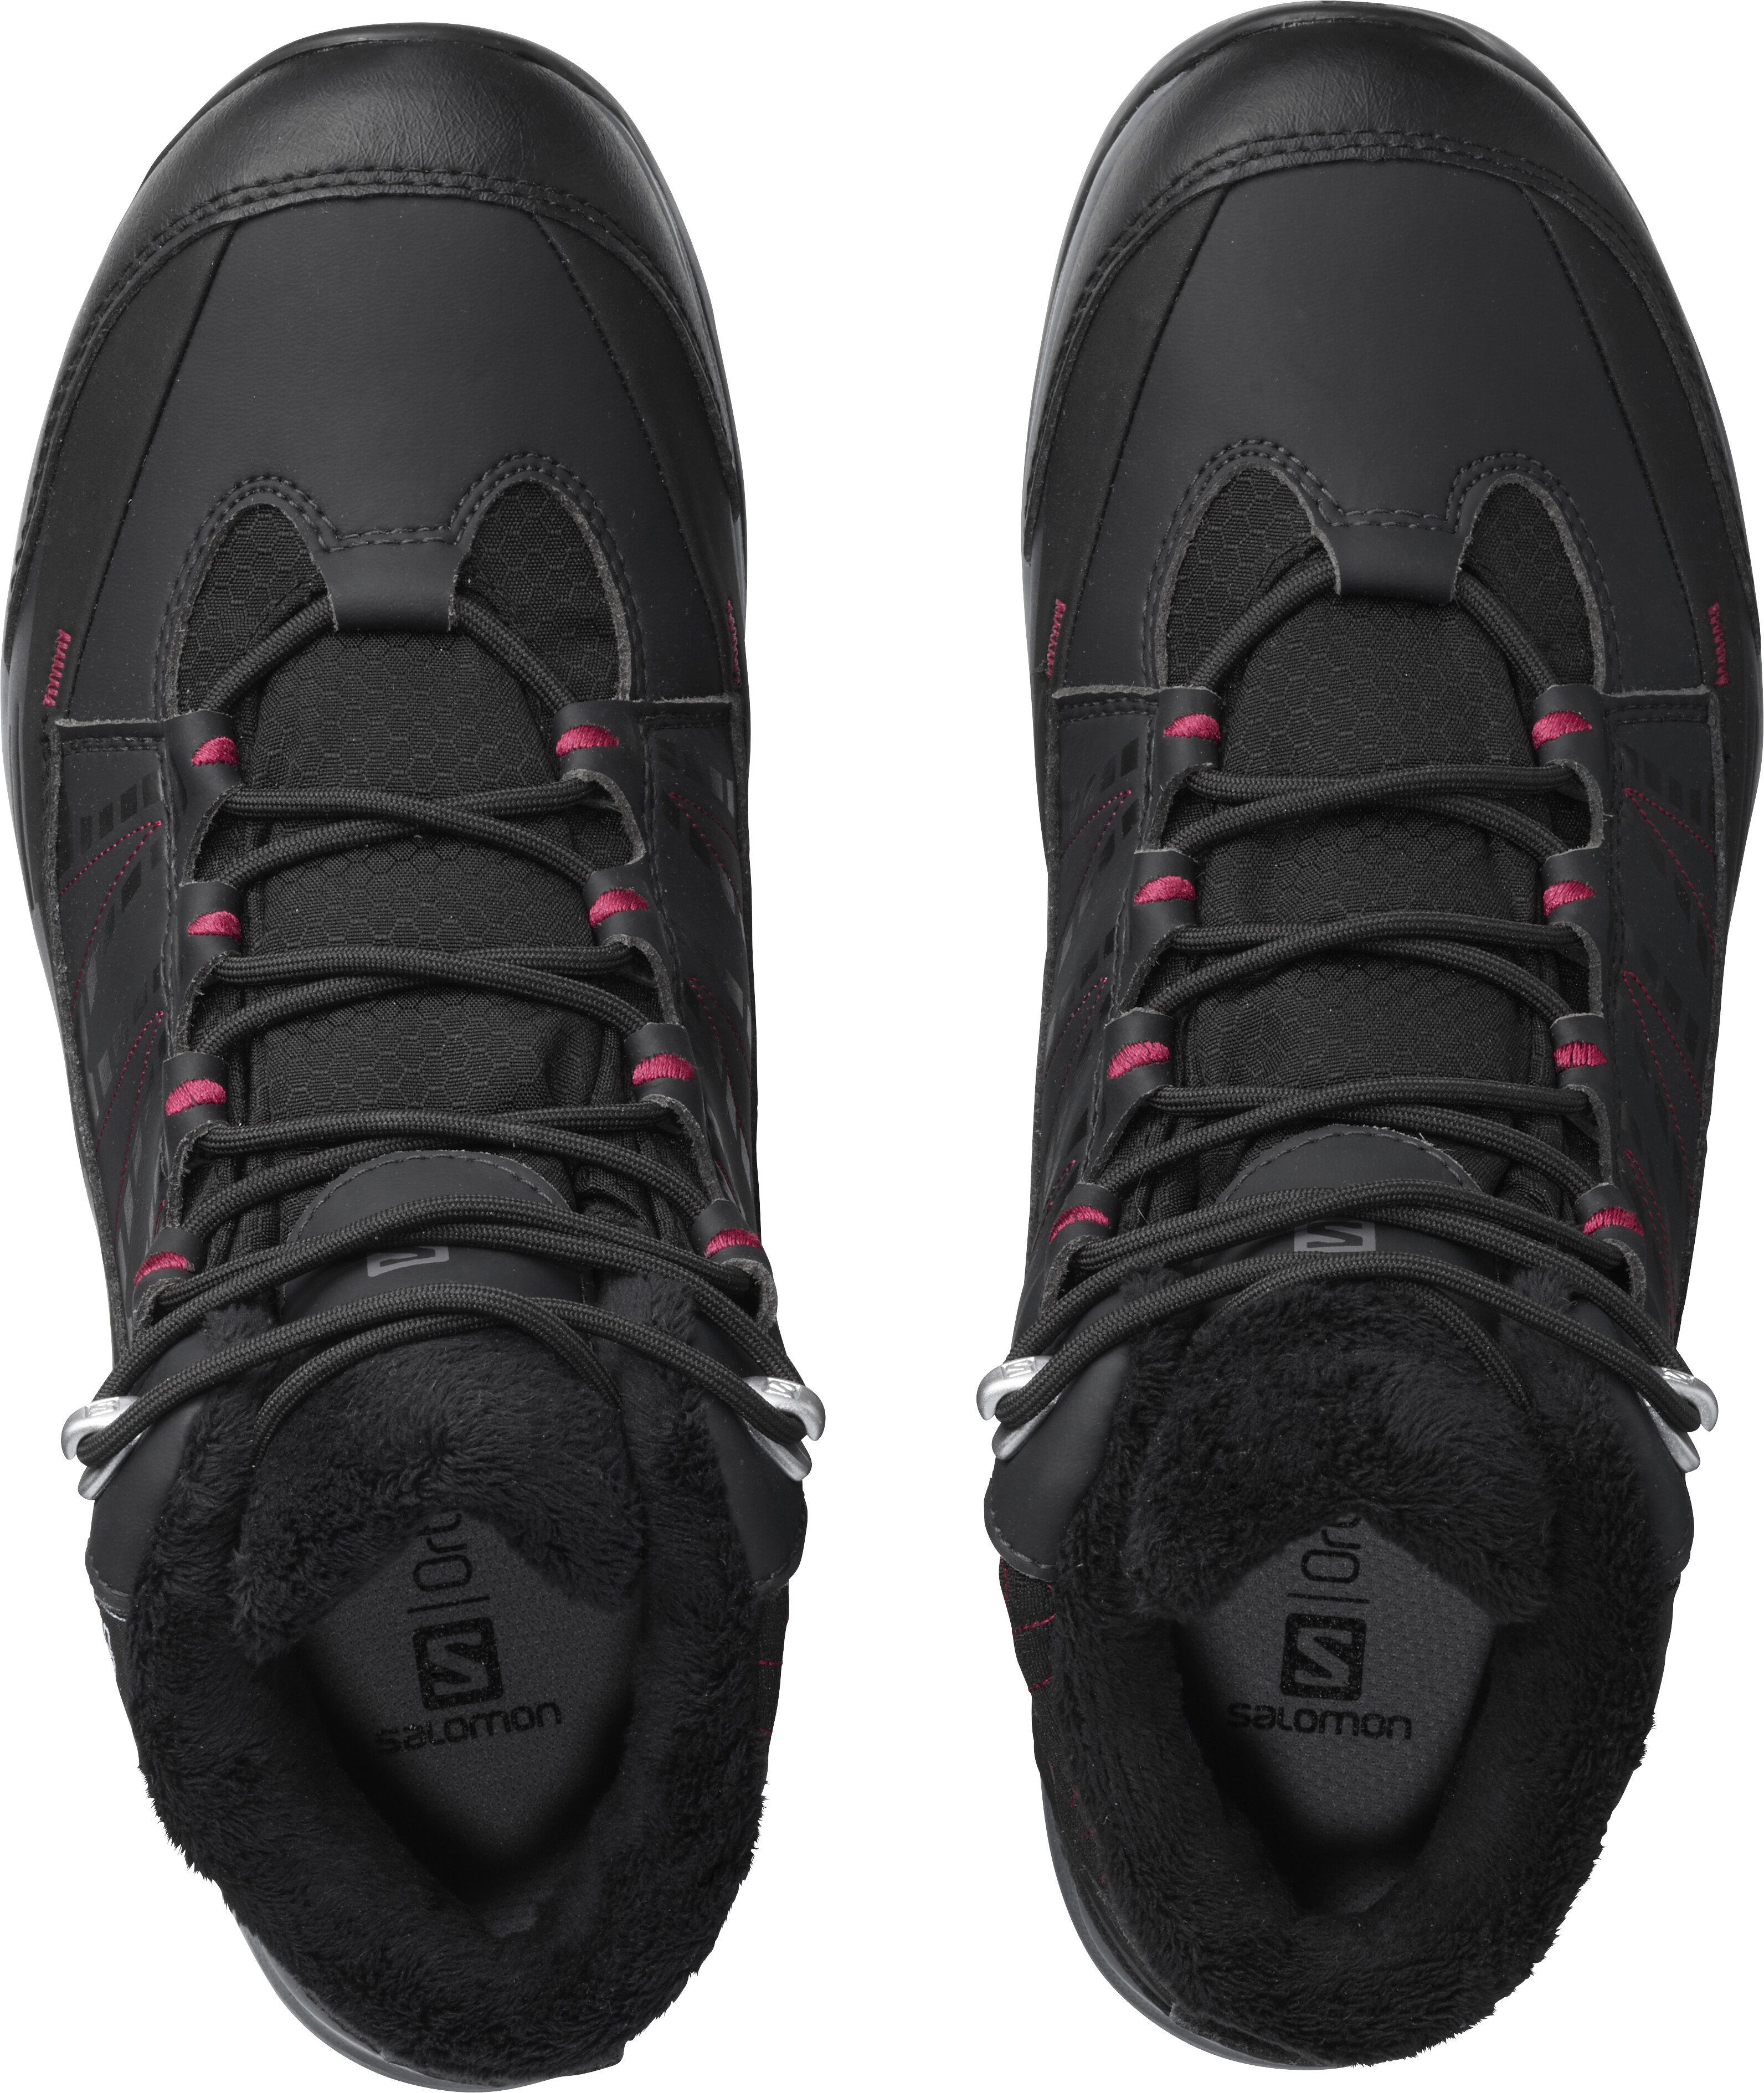 b94670f38bcd Salomon W s Kaïna CS WP 2 Shoes Phantom Black Beet Red - addnature.com